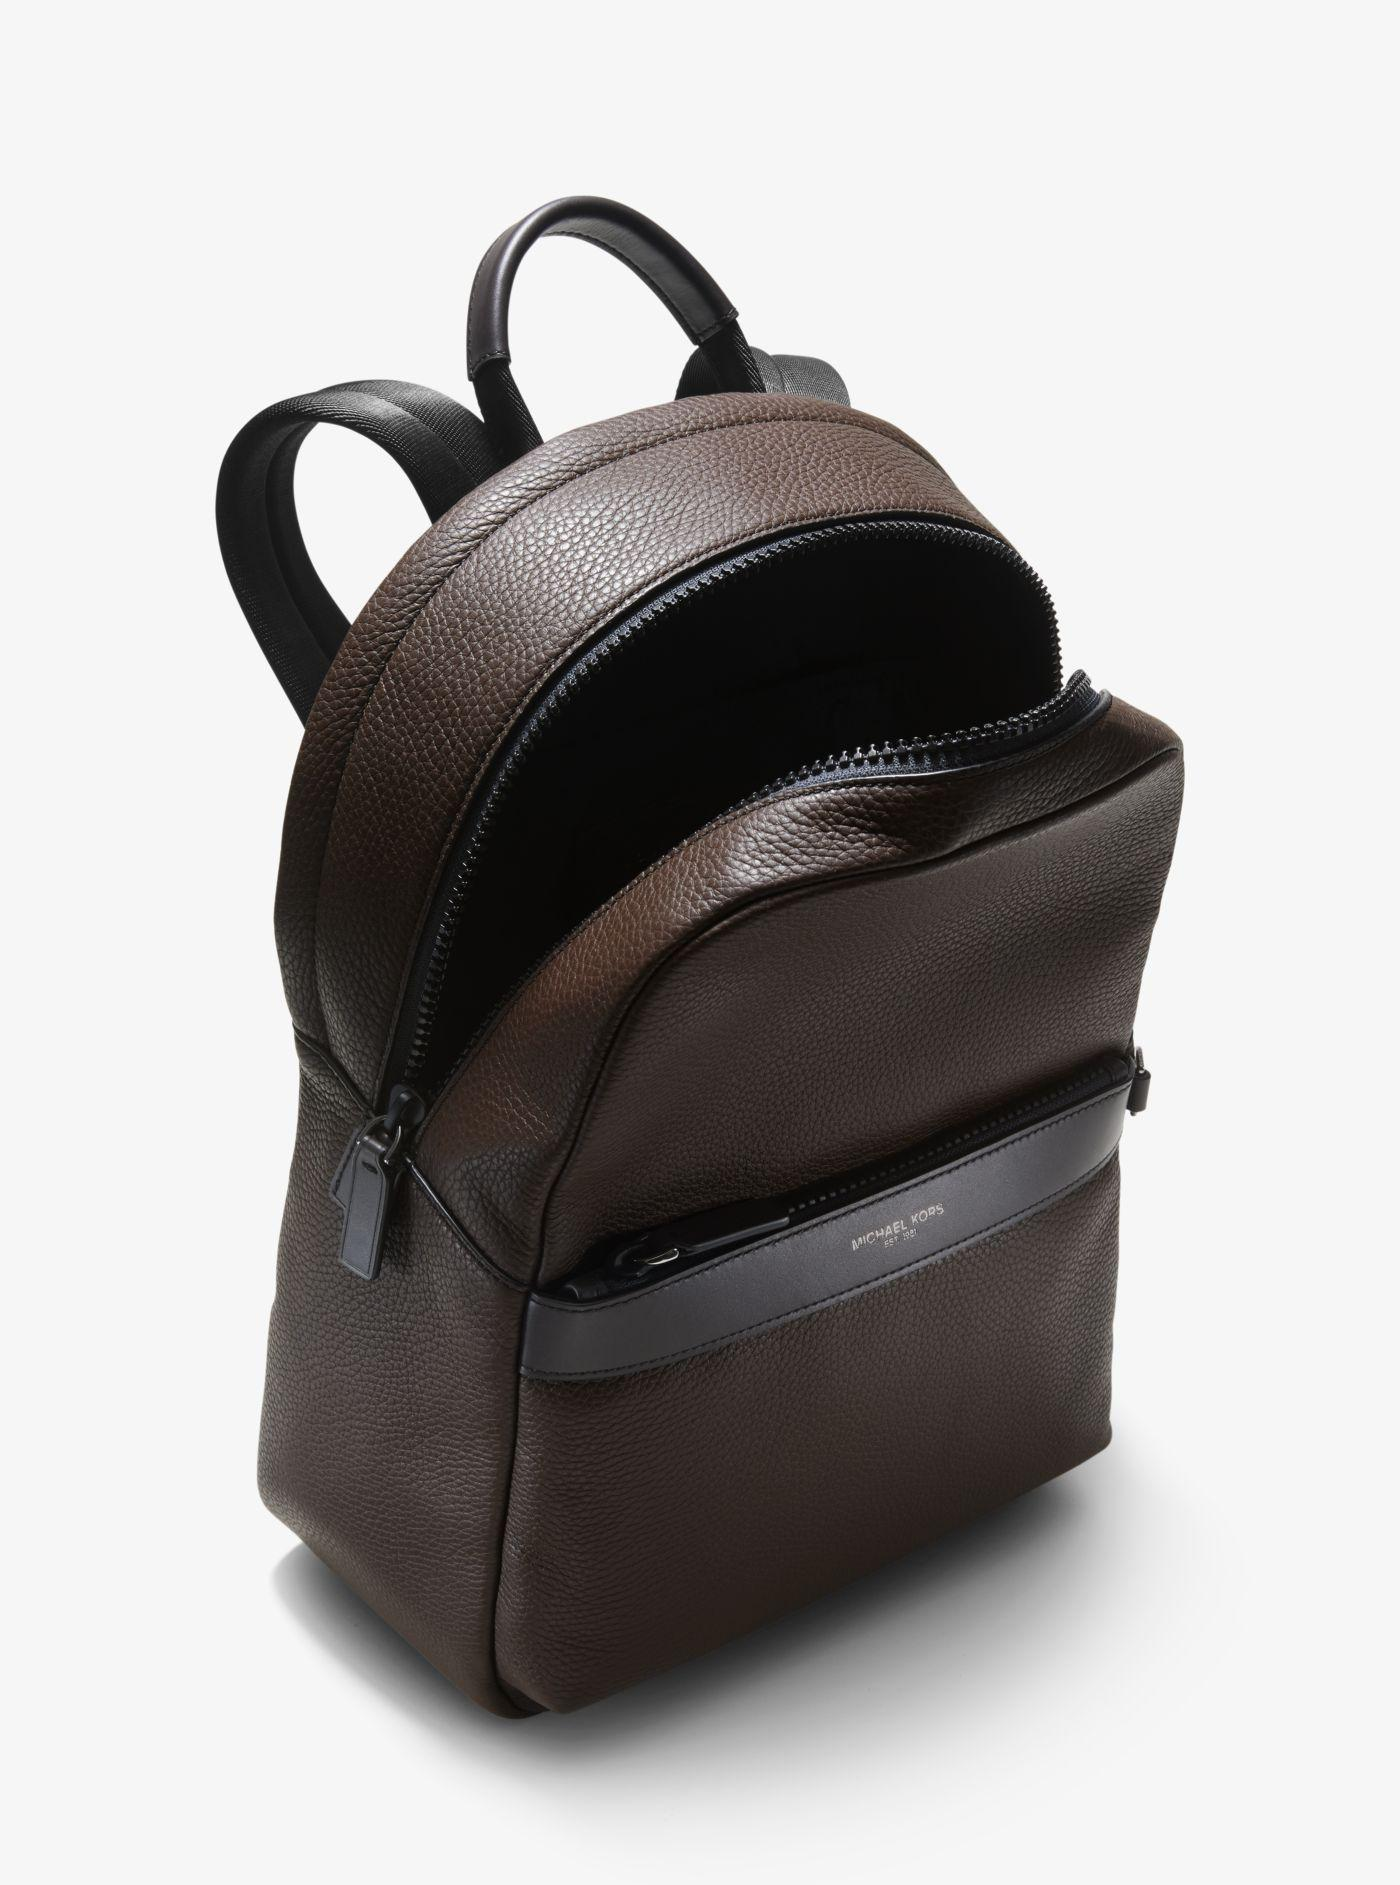 a373a6d90151 Michael Kors - Brown Greyson Pebbled Leather Backpack for Men - Lyst. View  fullscreen